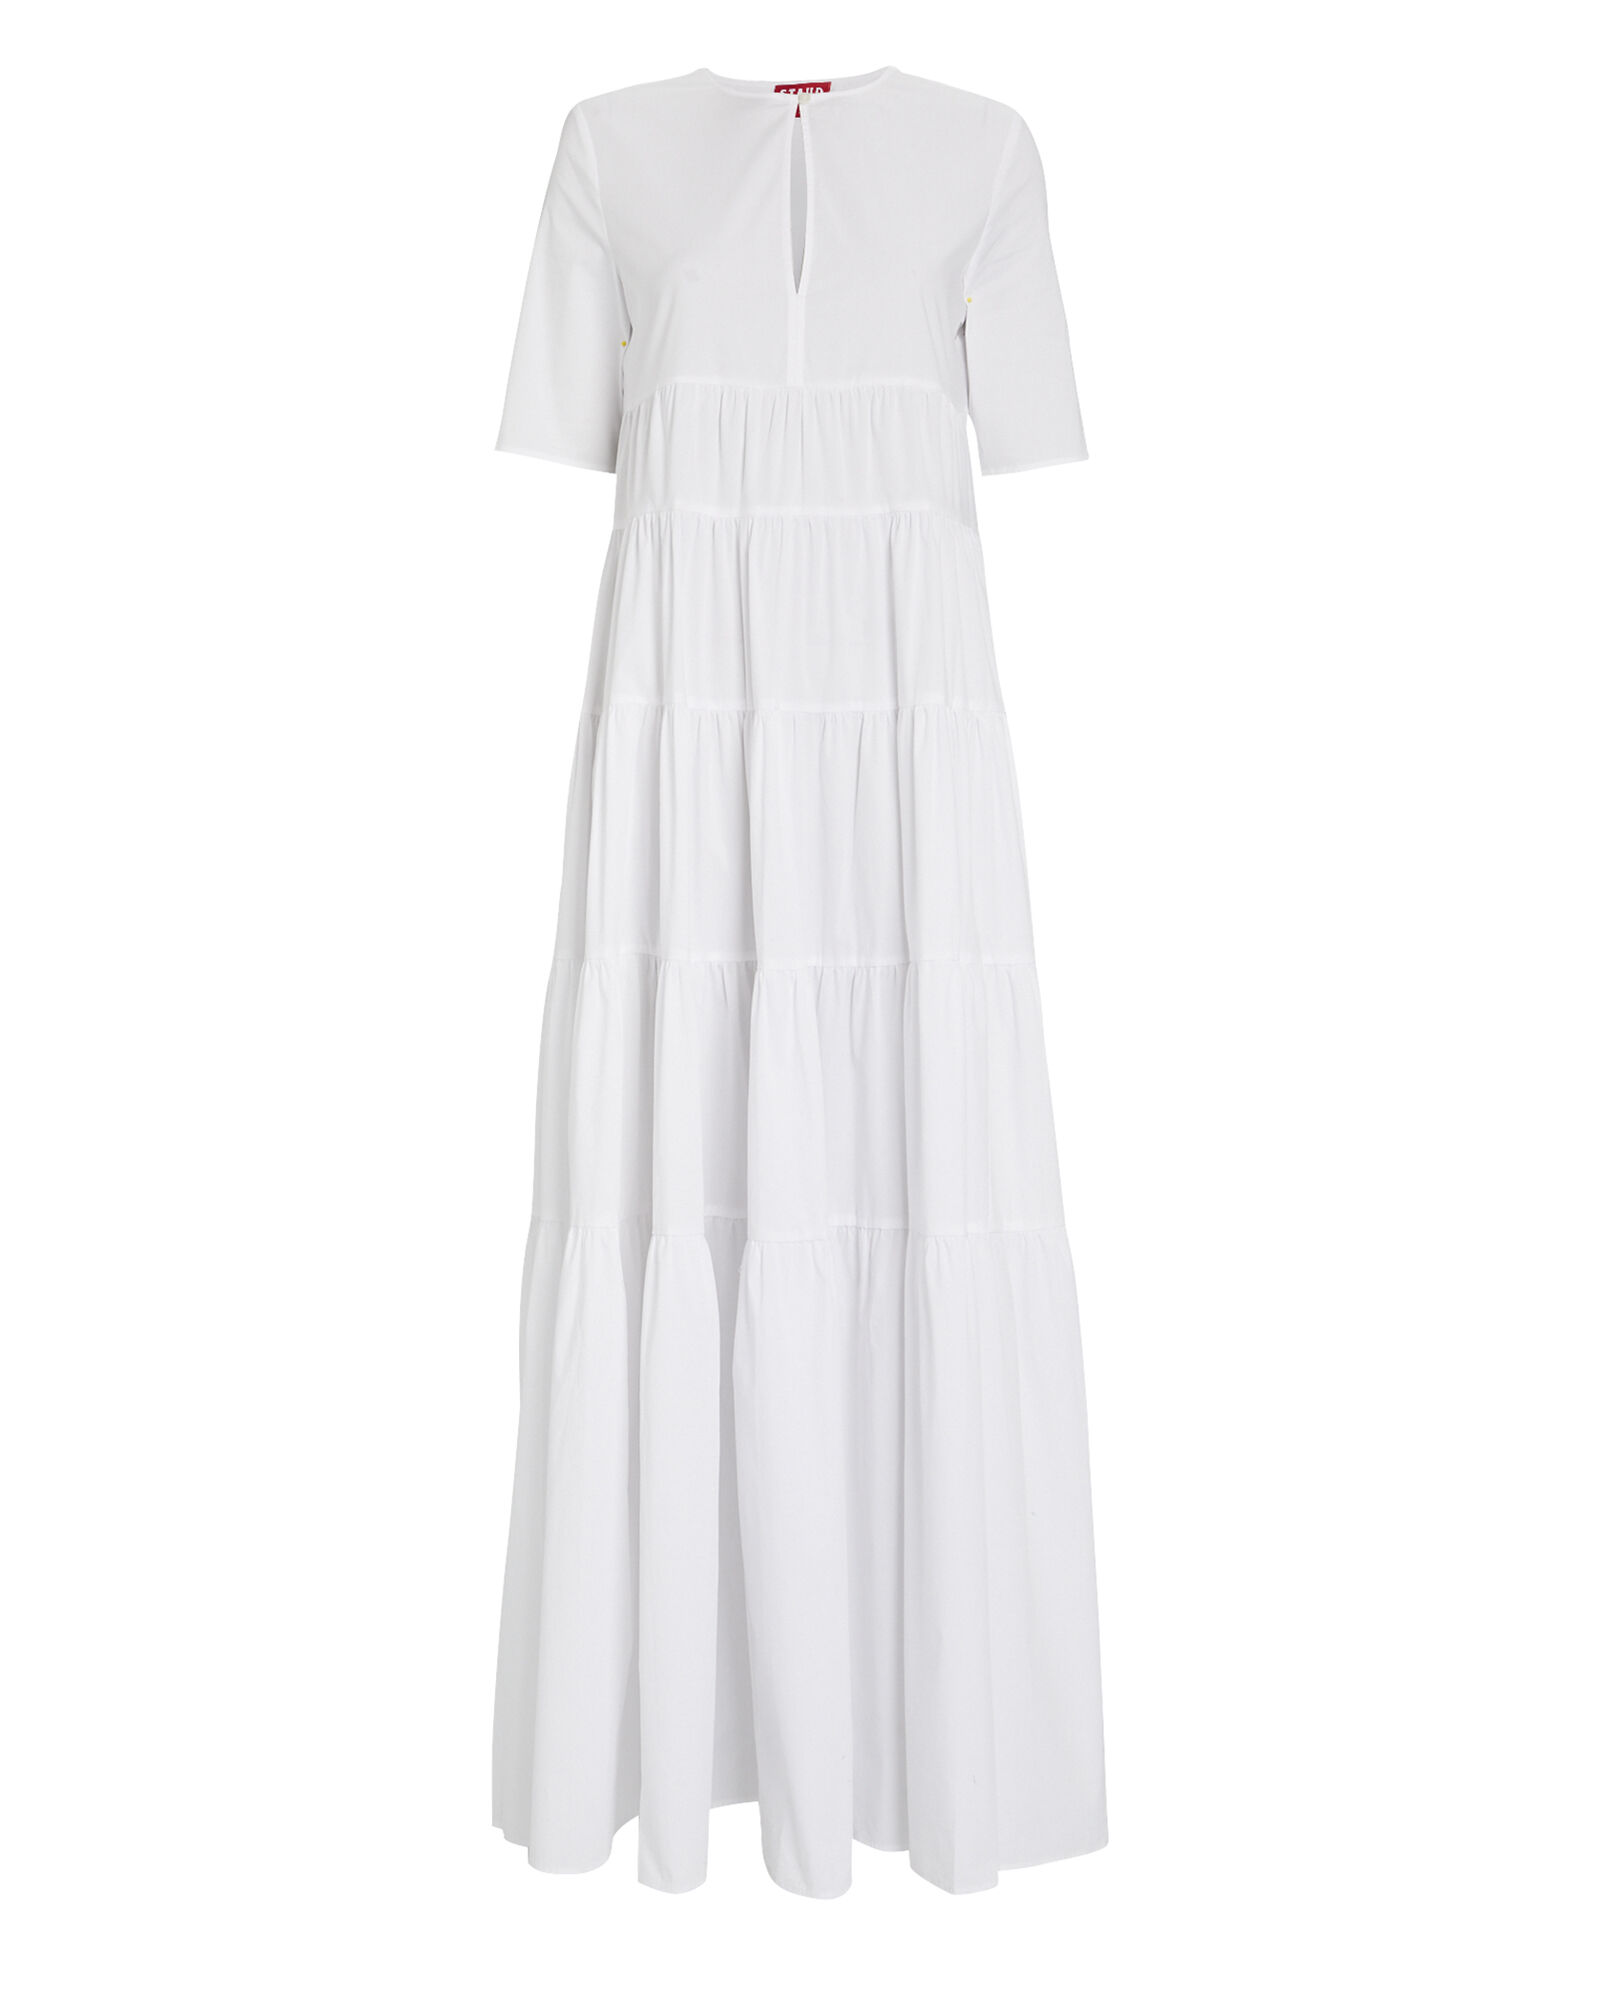 Cocoon Tiered Poplin Dress, WHITE, hi-res